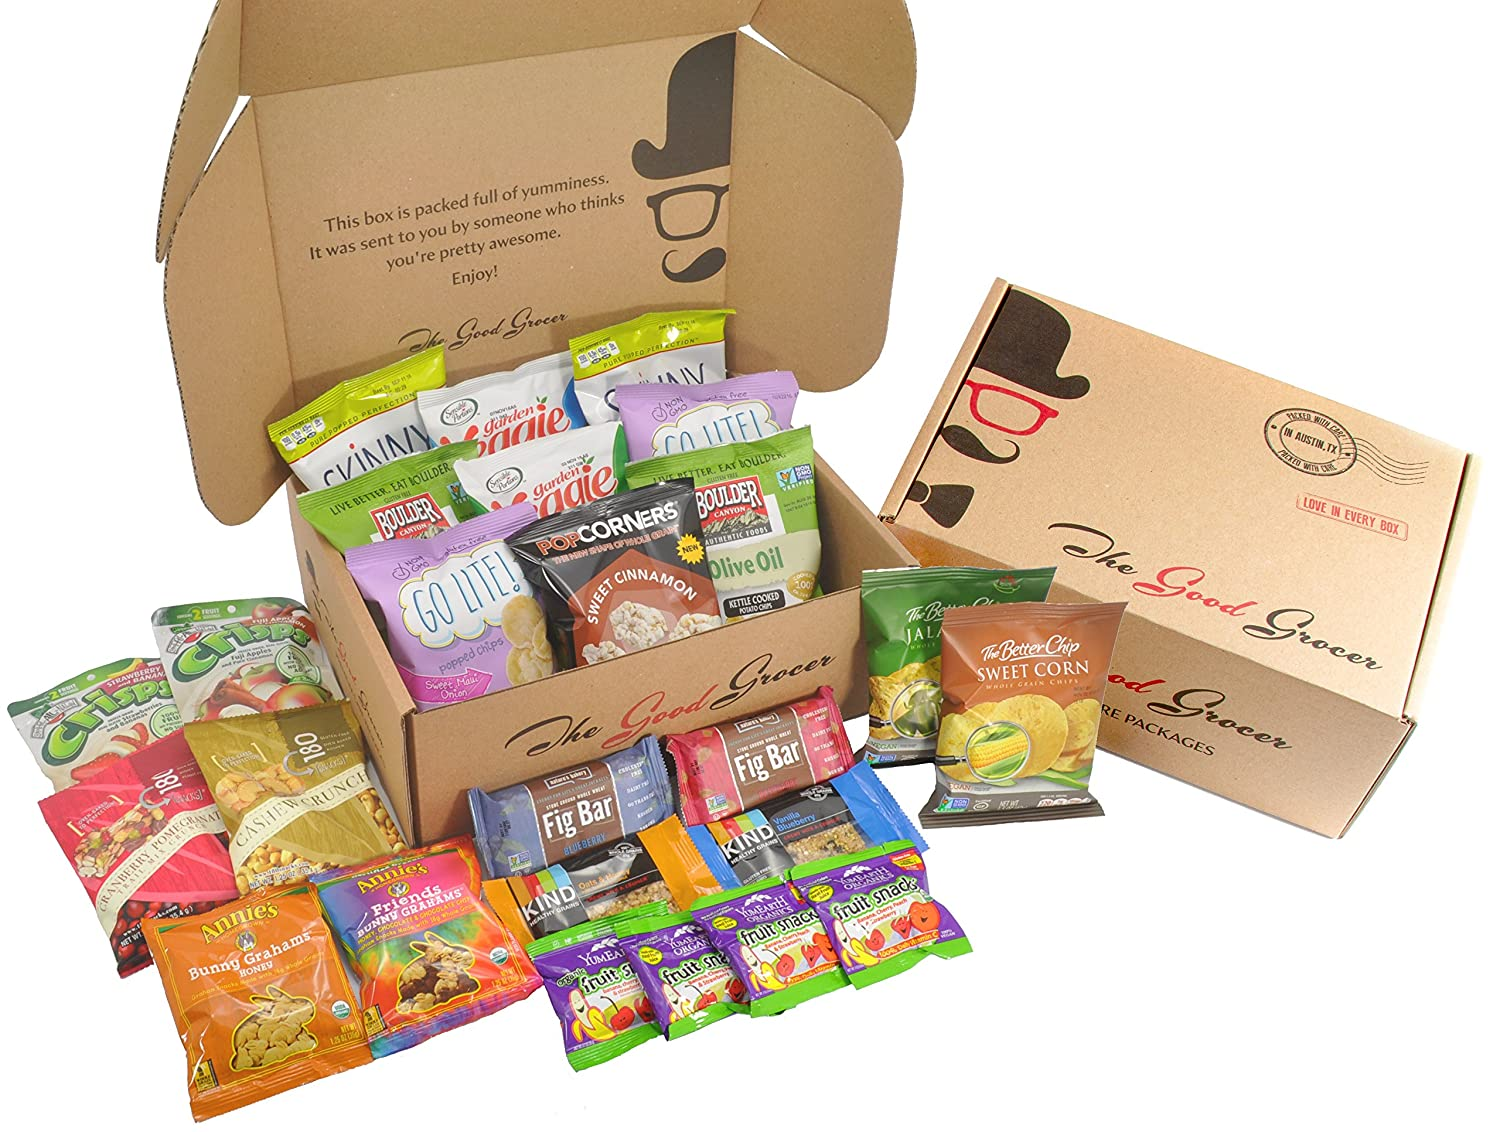 Non-GMO and Natural Healthy Snacks Care Package by The Good Grocer (25 Count) for College, Military, School Lunches, Gift Box, Variety Pack Assortment